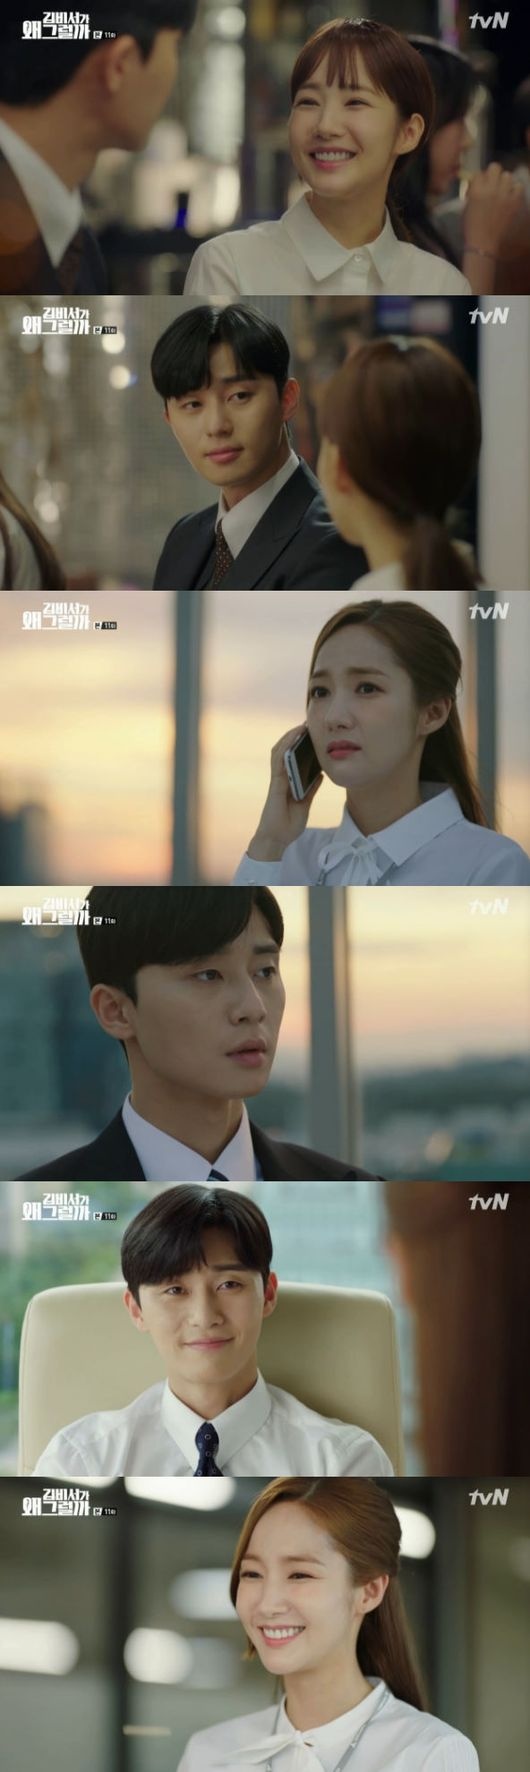 <p>Why is Gimbiso so? Park Seo-joon and Park Min-young have overcome past memories and deepened love.</p><p>Cable channel tvN aired on TV program afternoon on November 11 Waterwood drama Why is it so? (Screenwriter Bexon Ou Bolim, directed Bakjeunghwa) recalled all memories of which Gimmisso (Park Min-young) was kidnapped .</p><p>On this day Isuyong (Ichiefan) asked, My memories mistakenly thought your thoughts are so, but I did not answer the smile easily. Then I saw a woman wearing high heels at the magic show and fell down thinking of a terrible memory when I was a child. At this time, Yong Joon appeared and called a smile, but the smile woke up.</p><p>A smile awoke from sleep as a child and saw a woman passing by and shouted Mama. That woman got a smiley hand and left the way, Do not you go get your mother Chatnie? Her aunt to Mama? That smile was kidnapped, I met Yon Jun in that house. Young Jun introduced himself as smile with a smile, but remembered that the smile was Sung Young. Young Jun gave a smile to caramel and comforted.</p><p>The woman said, I gave him everything, but he is not that person, for that person, to my child in my stomach Jiwotnunde. Nowadays I slept comfortably with his sons I wonder why I am so hard that I have only a sin that loved people, I will die and I will go like a man feeling a little guilty, one person long haters I tried to go with you, he said, feeling a line on the neck of a smile. Young Joins the woman as saying, It is said that it will restart from now. But she said Im late, I have gone far too far, my child is over thankful, I will take care of you only for your care, instead look at my last one every month. A smile awakened from sleep said My aunt is funny, Yong Joon comforted the smiling cry, That is not aunt, it is a big spider.</p><p>Yongjun closed his eyes and went outside the living gear to get the scissors while the cable was attached to the limbs. After that, for a smile, spiders are always outside, so be sure to close your eyes and escape when you grab your hand and come out along. Smile said I want to marry a smiley older brother, Prince Older brother, Yong Joon fell in front of the police station looking at the illusion of a dead woman. Yonjun who was shocked struggled in pain. After growing up, I was surprised to see a young woman who looked like the woman, and when I looked at cable ties, I was tormented by trauma. I missed noticing a smile, but I thought that it was natural for me alone to bear the memory of the day. Still my heart went to Yon Joon to put himself in a secretary who does not have a time to smile. Among the people who have good specs, because of the smiling face that suffered because Japanese can not be done by himself alone, Yon Jun gave me Japanese homework everyday and took a look directly. Continuing, Young Jun gave gifts and gifts of Chinese books.</p><p>Sung Yeon said to Yeon Jun, I was trapped there, was not me, you were you I did not remember it was not a job I did not feel guilty You were strange, you were not going to be trapped I asked. A smile said, I also remembered, and now I understood, why did I want to find my brother like that, my older brother was also frighteningly terrible, thank you for protecting me and thanking that word why Asked, Have you kept it secret? Yon Jun said, I could not forget the day as well, as soon as I closed my eyes, that bad thing came out clearly like what it was yesterday so Gim Bisso does not remember I thought that it was good, I did not want to give that pain a little, I was glad if it did not remember forever.  A smile is sorry that Now it is full of consideration and vice chairman and one matches, I promise you will not hide in the future. Yong Joon promised, I will be next to me tonight.</p><p>Sung Young was shocked after gradually remembering the memory that he had abducted Yeon Joon in the street and was abducted. Why did not you tell me the fact that memory was wrong soon by Cheoyosa (Gimhae Ok), Young Jun did not lose memory, I remember everything that day.</p><p>Young Jun gave a sweet home set of Nana for a smile and asked, It is okay for your master to feel at this level. Smile said Do not remember Yon Jun said Im trying to get married enough to be overwhelmed that I have a lot of money to buy a sweet home for Nana. Get a sweet home set company at Nanas home at the age of 9 So, there was a big fuss at home, whether it regressed in early childhood or whether there was a problem with the identity, but it is OK.  A smile is said, If Gecom is made of cowhide and adheres to the ground, it disappears without a trace, it will disappear without a trace like Gekom, said Yong Joon. A smile laughed, You may be my brother as a vice chairman, Yeon joed backhag and laughed together with I want to put out T so far. Yeon joined the smiling face of always going to work, I will not be the future, because I am a woman, he smiled as if the smile was Was it hand-made, is not it a boyish? Yon Jun dried his attendance if he could not work with his lame hands.</p><p>A smile went to the stop to stop, Yon Jun gave a frosty expression with a gentle expression that before the Gimmeia (Table Yein minutes) that self-righteous man abducted so much, A self-righteous man can do too much and a woman who is not timely is not good . Young Jun invented a method to make smiles leave early. I ordered to receive the power supply hotel spa in the attached room. Yon Jun expressed his heart as Gimbiso sent when he took a break, so Im in a good nights sleep and smiles sent a heart to him for a smile. Yon Jun answered, I send a hollow heart, but send a cheating full heart, I have many feelings for me? And I will send two because the scale is big.</p><p>Yon Jun continued to do this and the company love affair, such as making employees leave early for a smile. Yon Jun came to the amusement park with a smile after work. I explained that the house where two people were trapped in the past was Carousel position. Young Jun said, I thought it was good to know the fact that it seems that the terrible memory at that time could be overwritten for those who would be happy to ride on Carousel. The smile said, I have not had any pain here at the moment, so its just a lot of fun, Carousel said. The old house where the smile lived turned into a fountain. A smile laughs We are happy in the future, because we are always working together forever.</p><p>Yon Jun said, Im going to our house tonight, I do not want to be alone, I could not sleep because the woman floated every night, I was tormented by the sleeping nightmare Gimbiso suffered from a nightmare like me I do not want to put it on alone tonight. The smile said, Actually I do not remember well at that time, but I flew, I thought that it was a terrible scary spider when I saw a person who died, its that degree, its a very painful slop-jin, so I really want to talk about getting tough And it was fine. Yong Joon promised himself to protect himself for a lifetime, Ill be waiting all night so call me.</p><p>Yeon Jun said, All my moments were you.When I was in love, even when I was sore, until the moment we broke up you were my world and it was all moments, I was without you now , I may not be able to explain my life until now. </p><p>A smile lay in one bed frightened a sound heard outside. At this time, the buzzer sounded outside, and Yon Jun visited. Yeon Jun said I do not want Gimbiso to come to our house, I will go to bed at Gimbiso family, as Jar as it is today. / [Photo] Capture the broadcast screen of Why is Gim Bisso so?</p><p>Capturing broadcast screens of Why is Gimbiso so?</p>